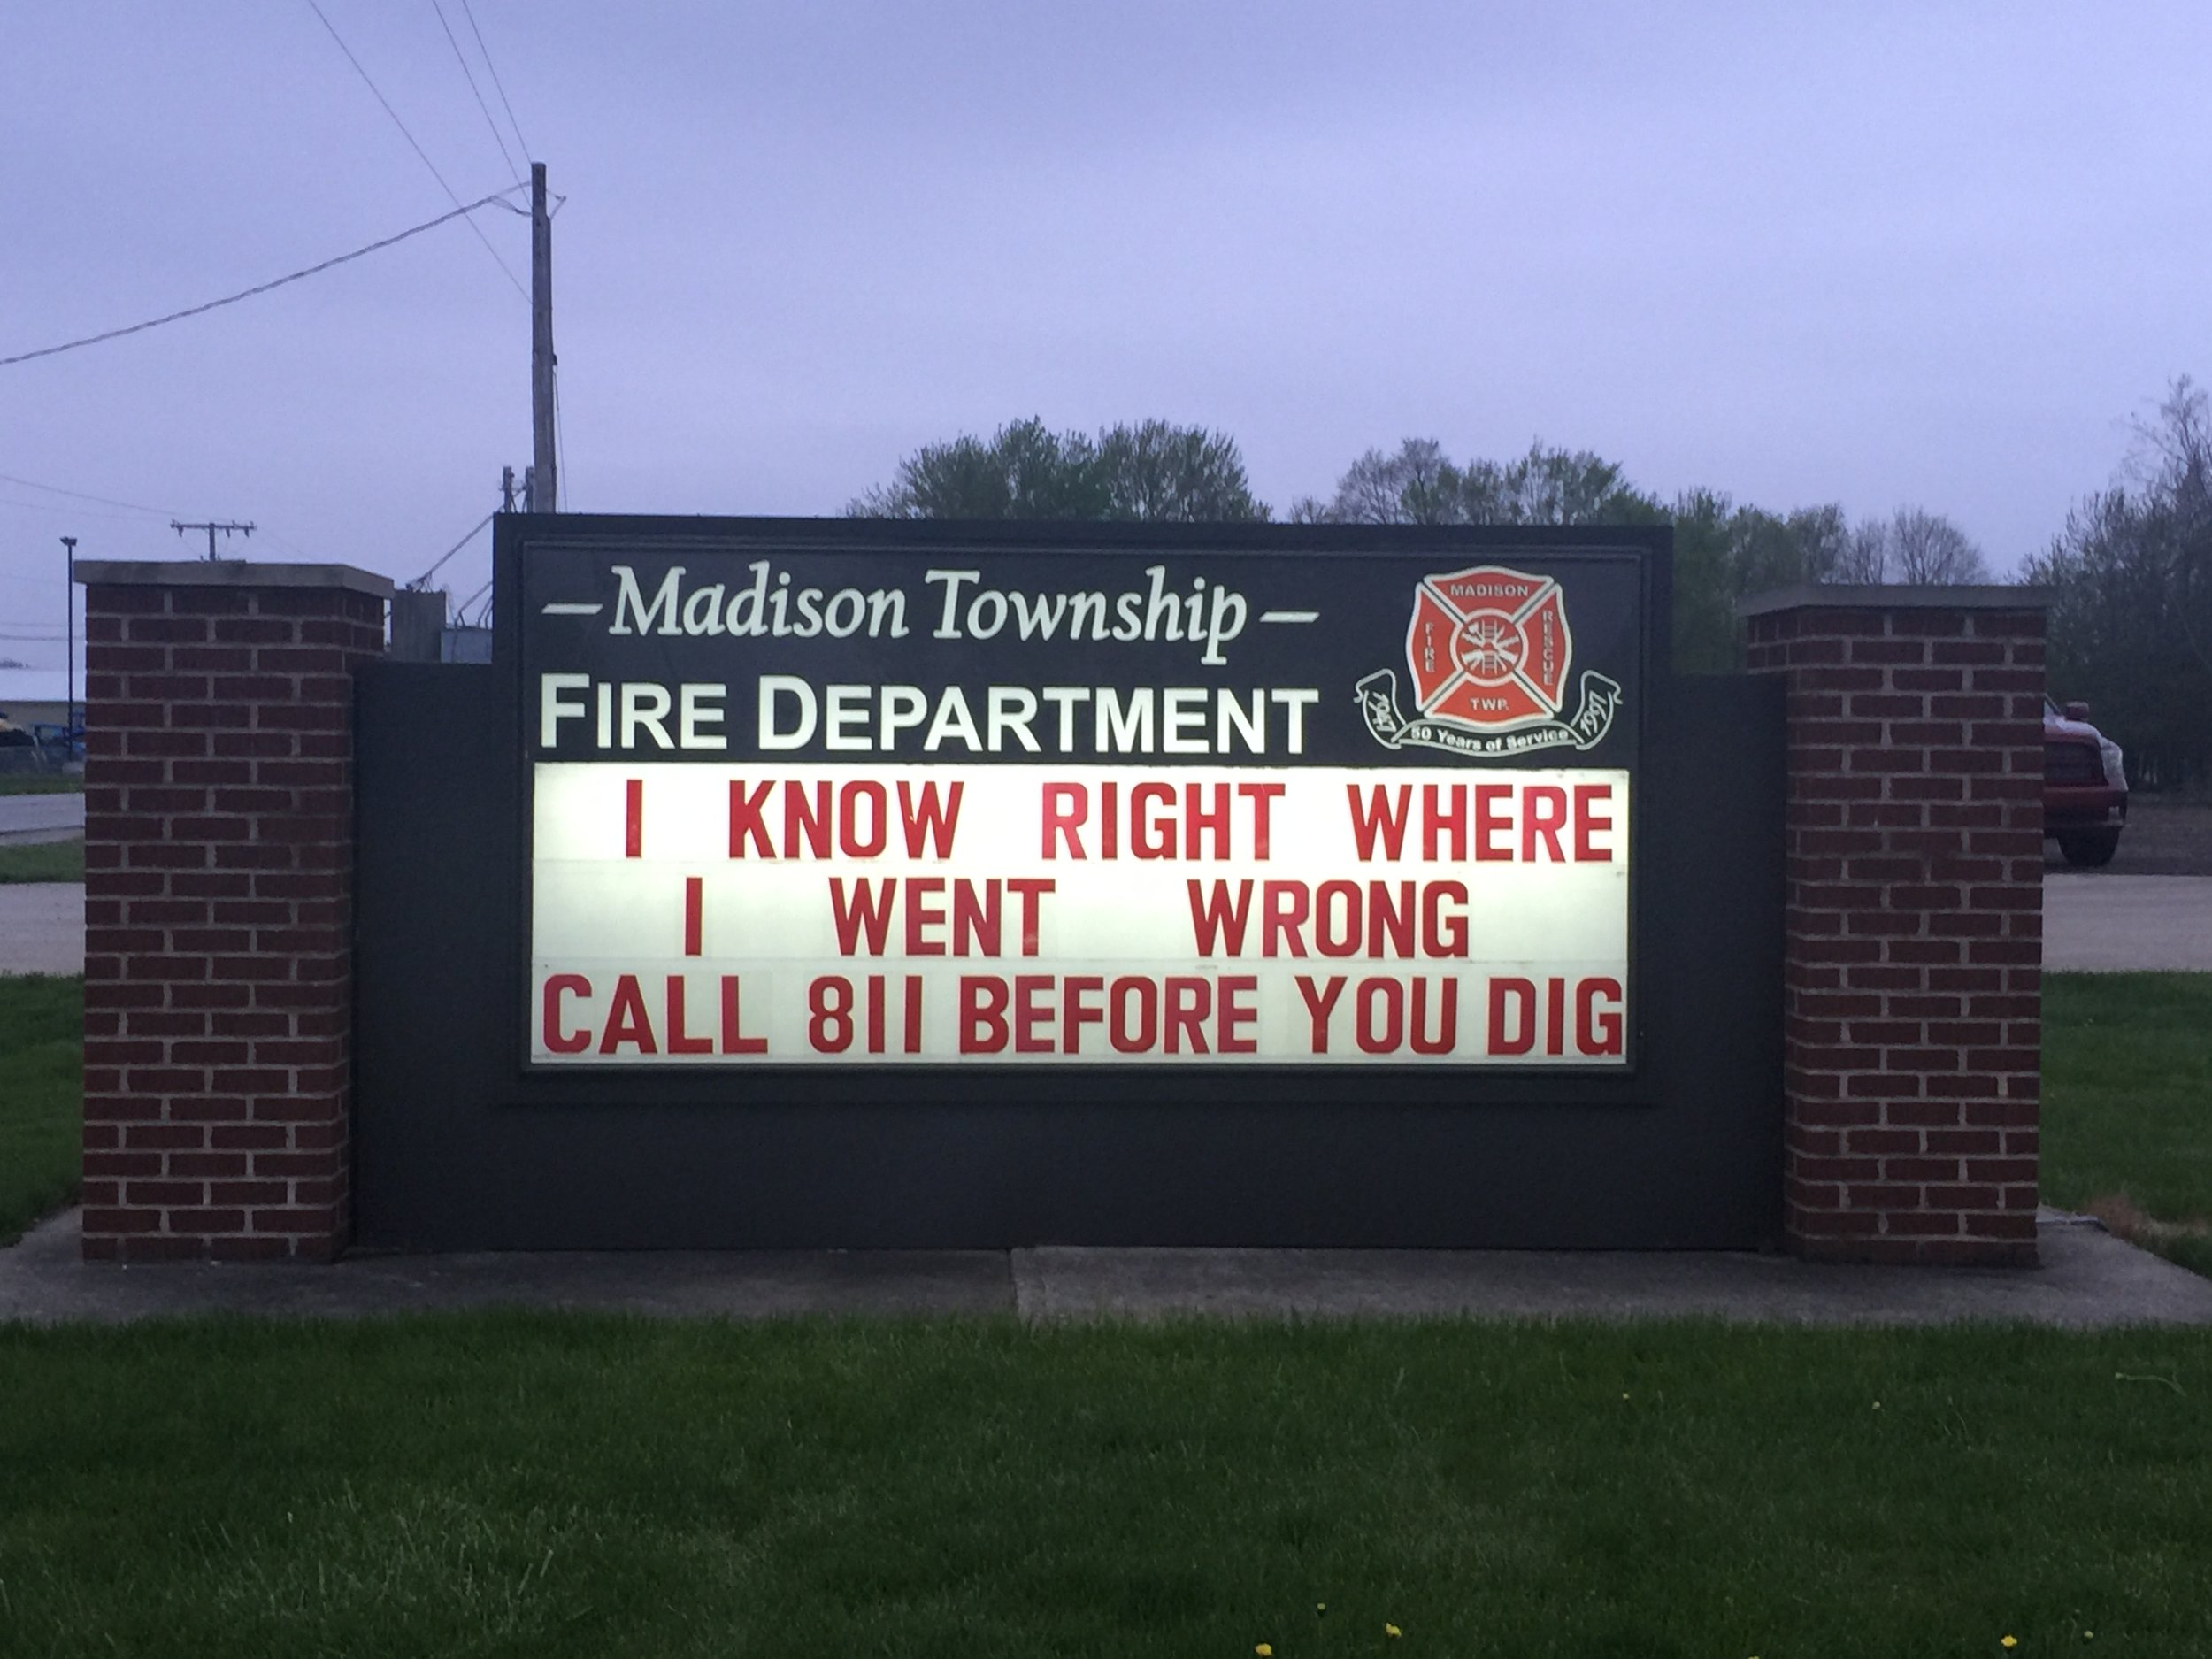 Madison Township Fire Department